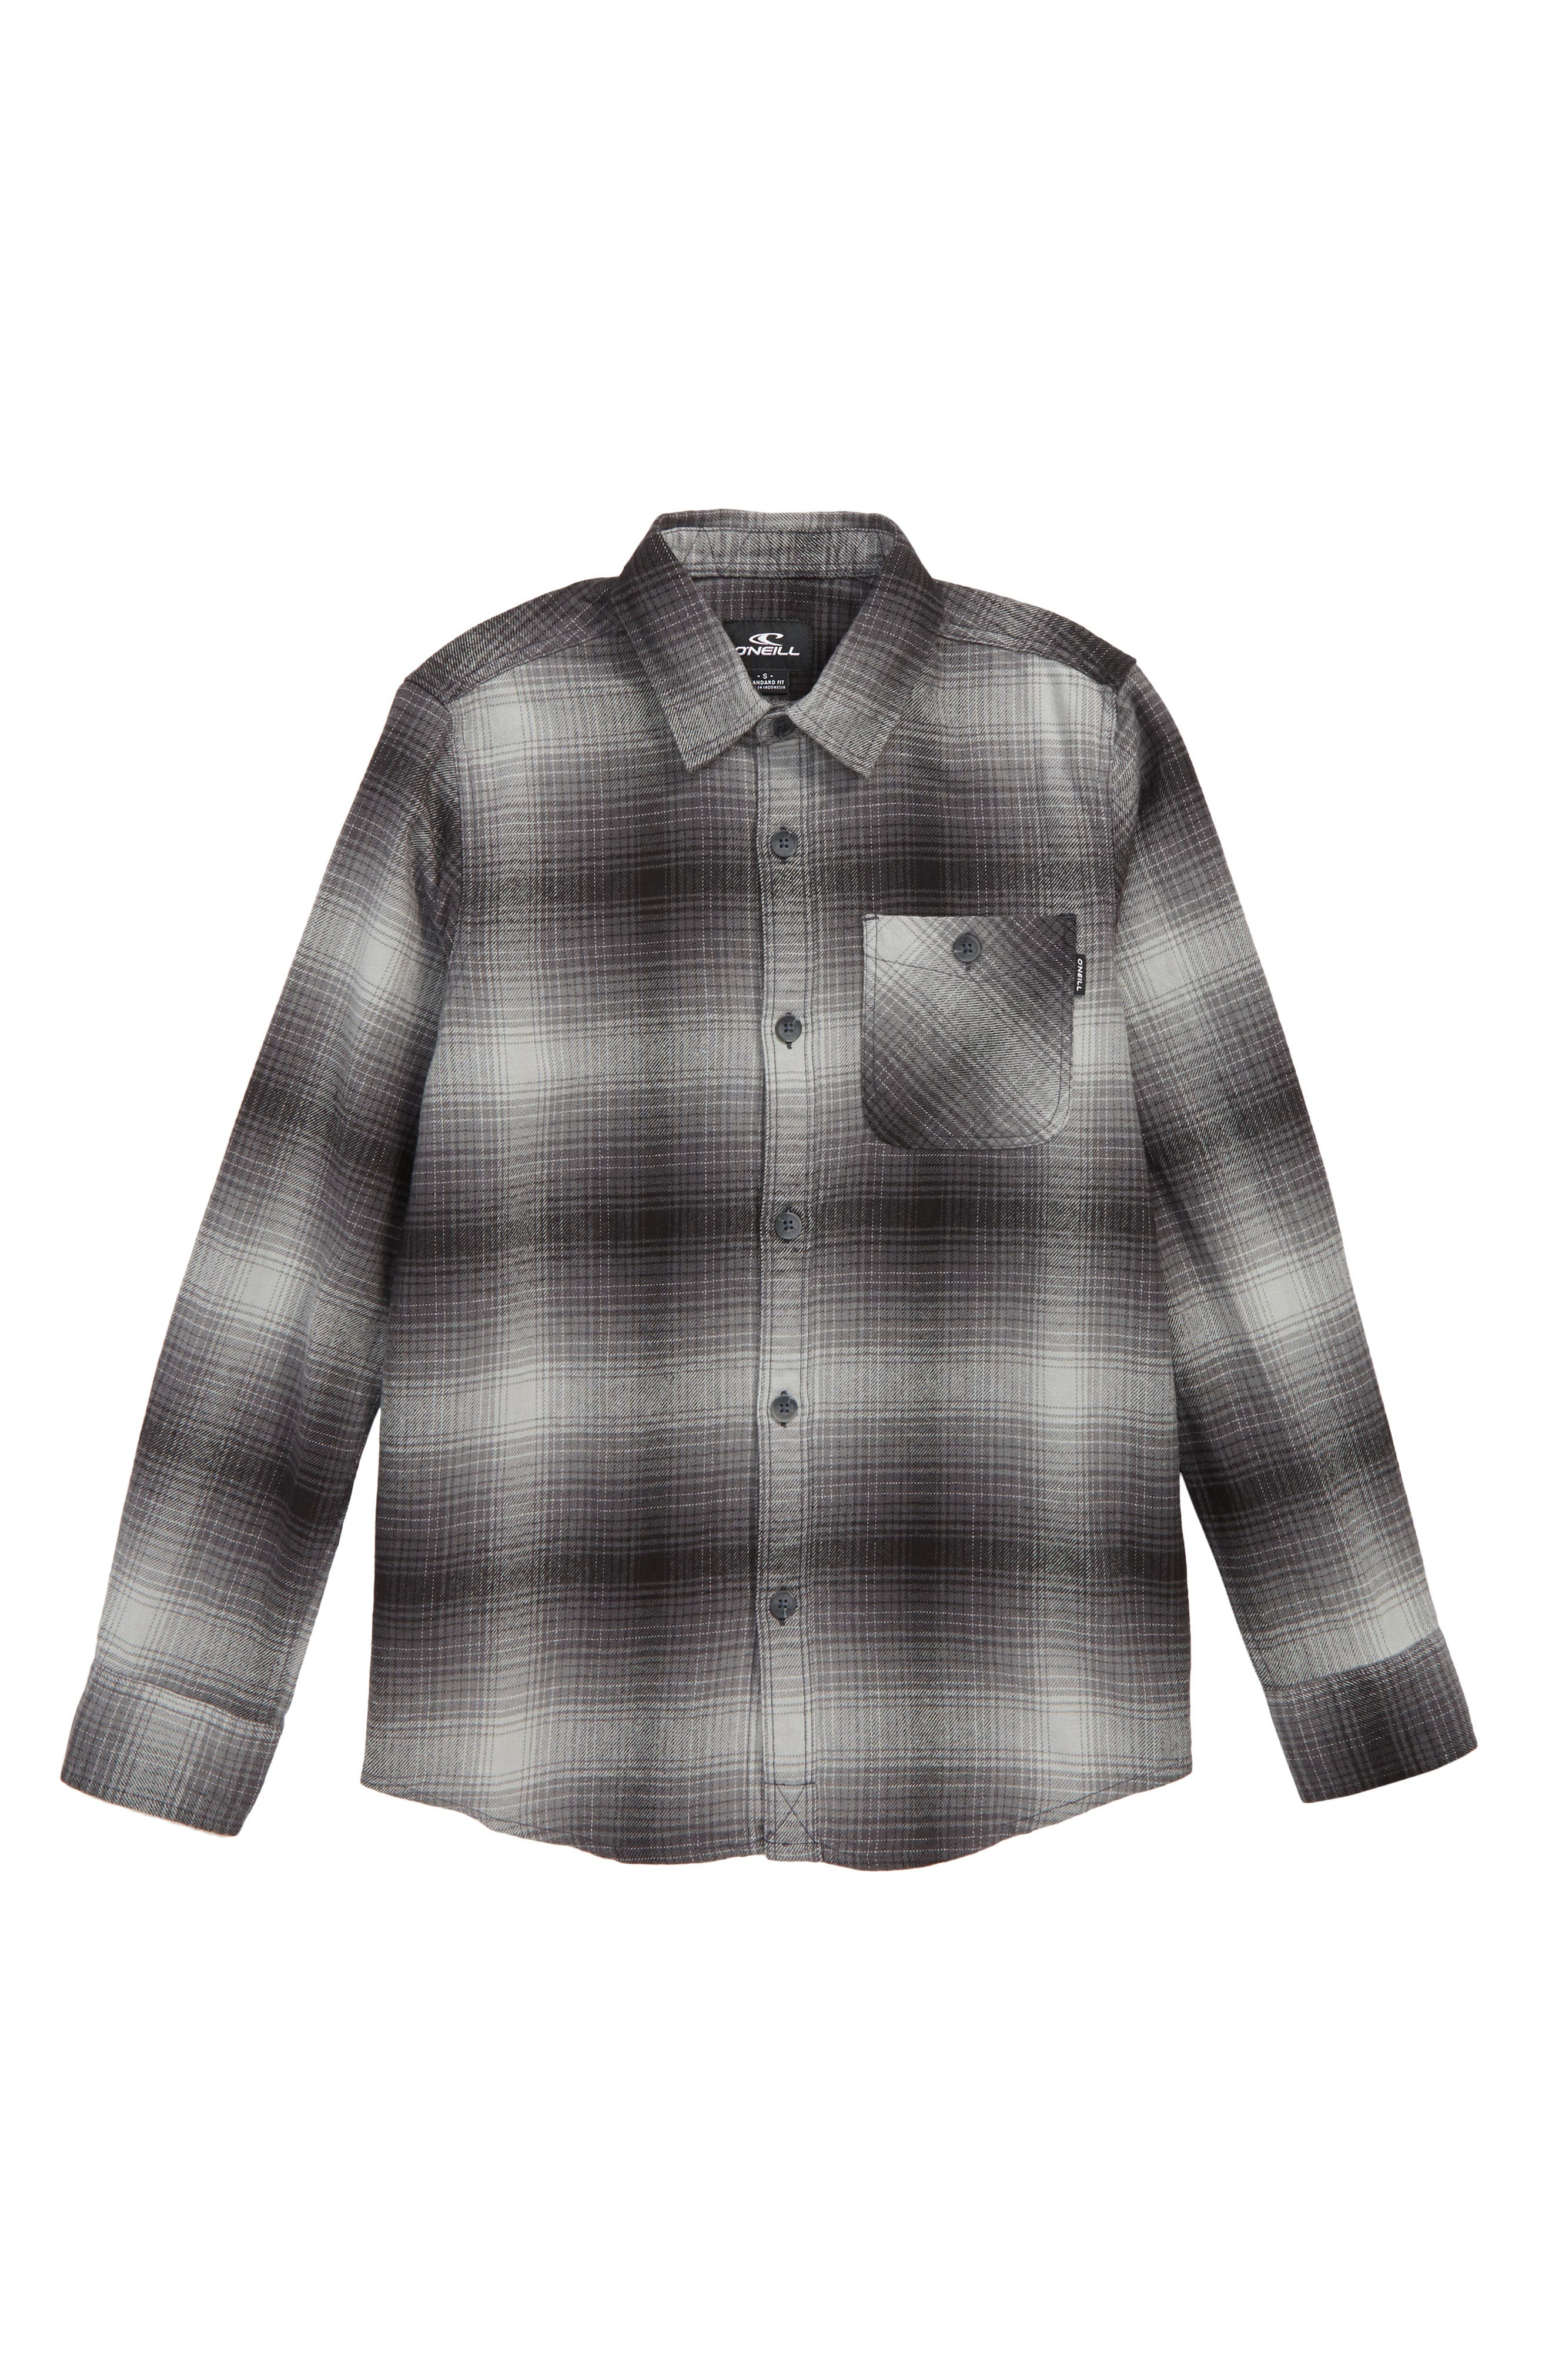 Dillishaw Flannel Shirt,                             Main thumbnail 1, color,                             001